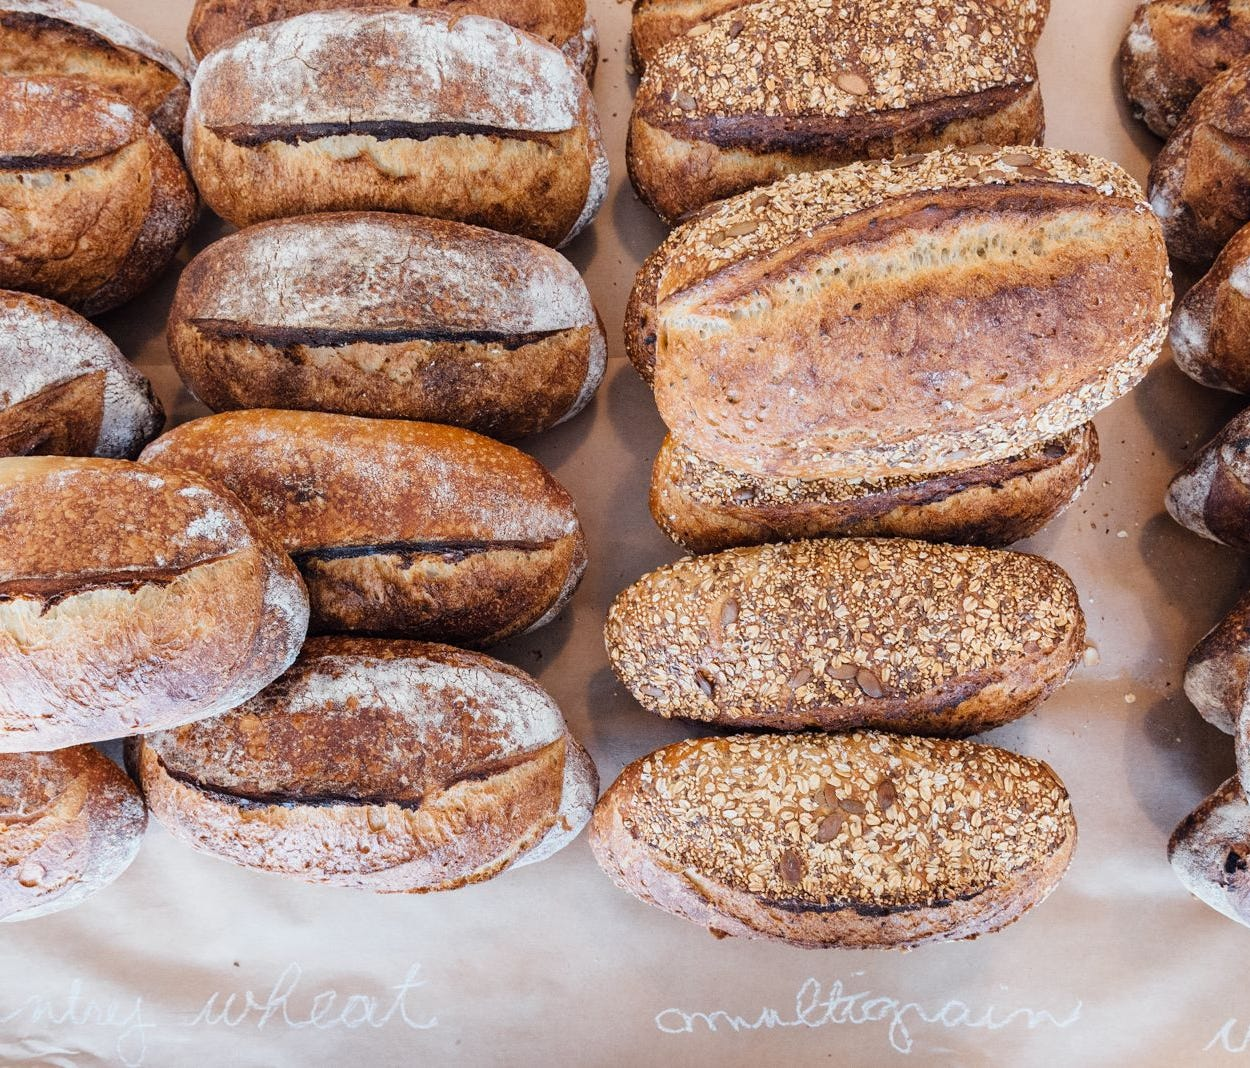 Zak the Baker's popular multigrain and country wheat loaves are crispy on the outside and chewy on the inside. Everything in the bakery is certified kosher.